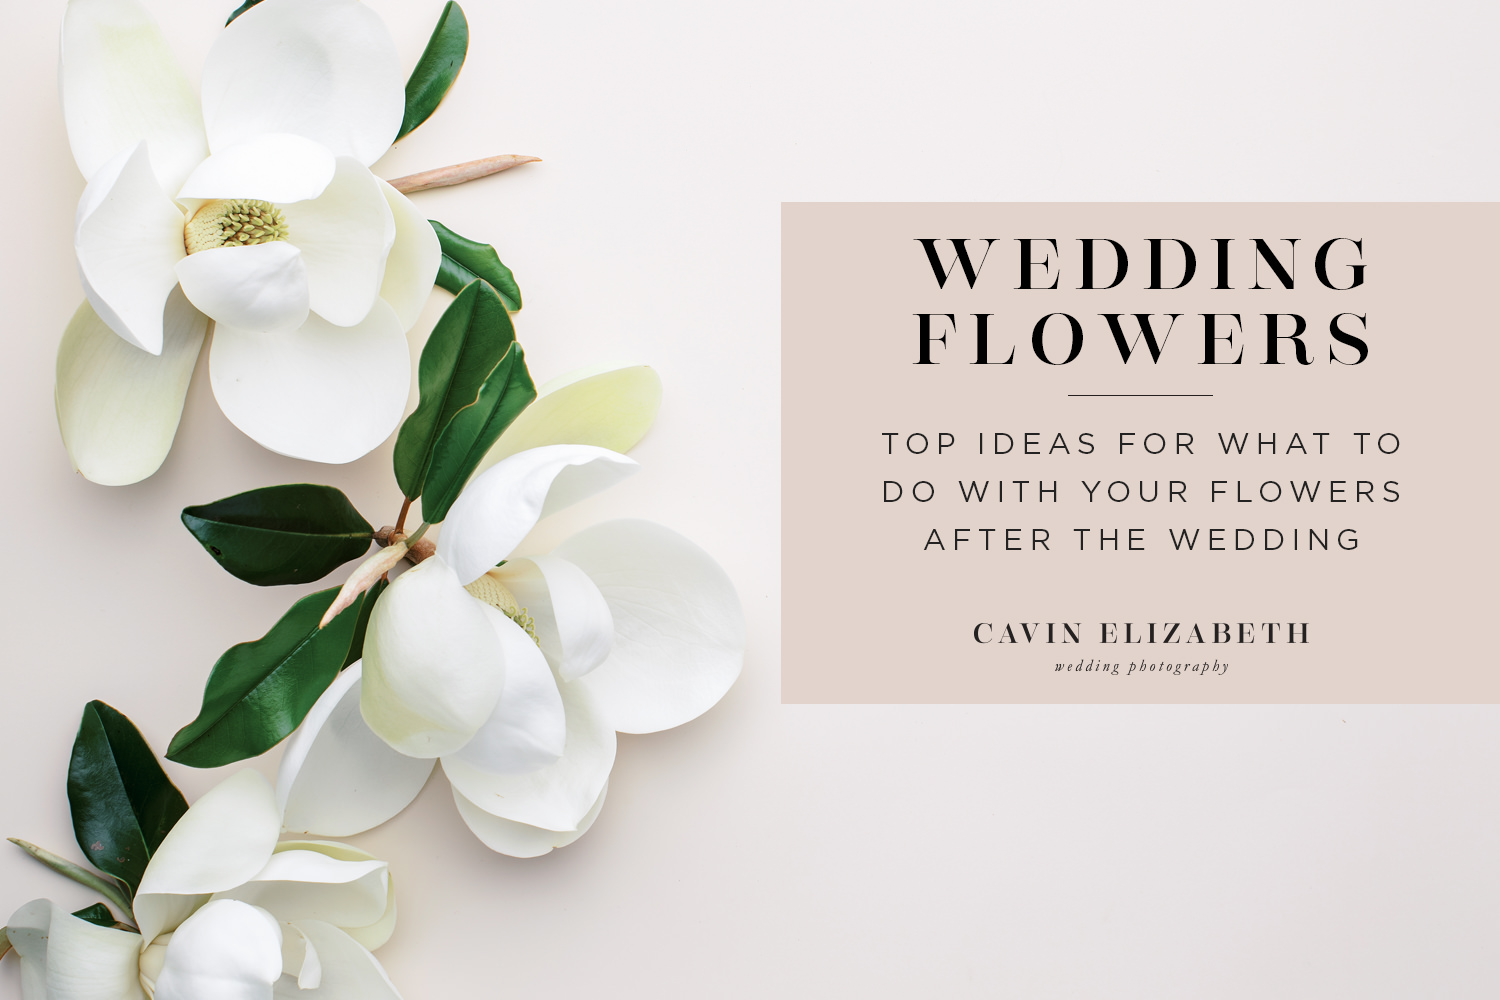 What To Do With Wedding Flowers After Your Wedding, ideas for how to donate or reuse your wedding flowers